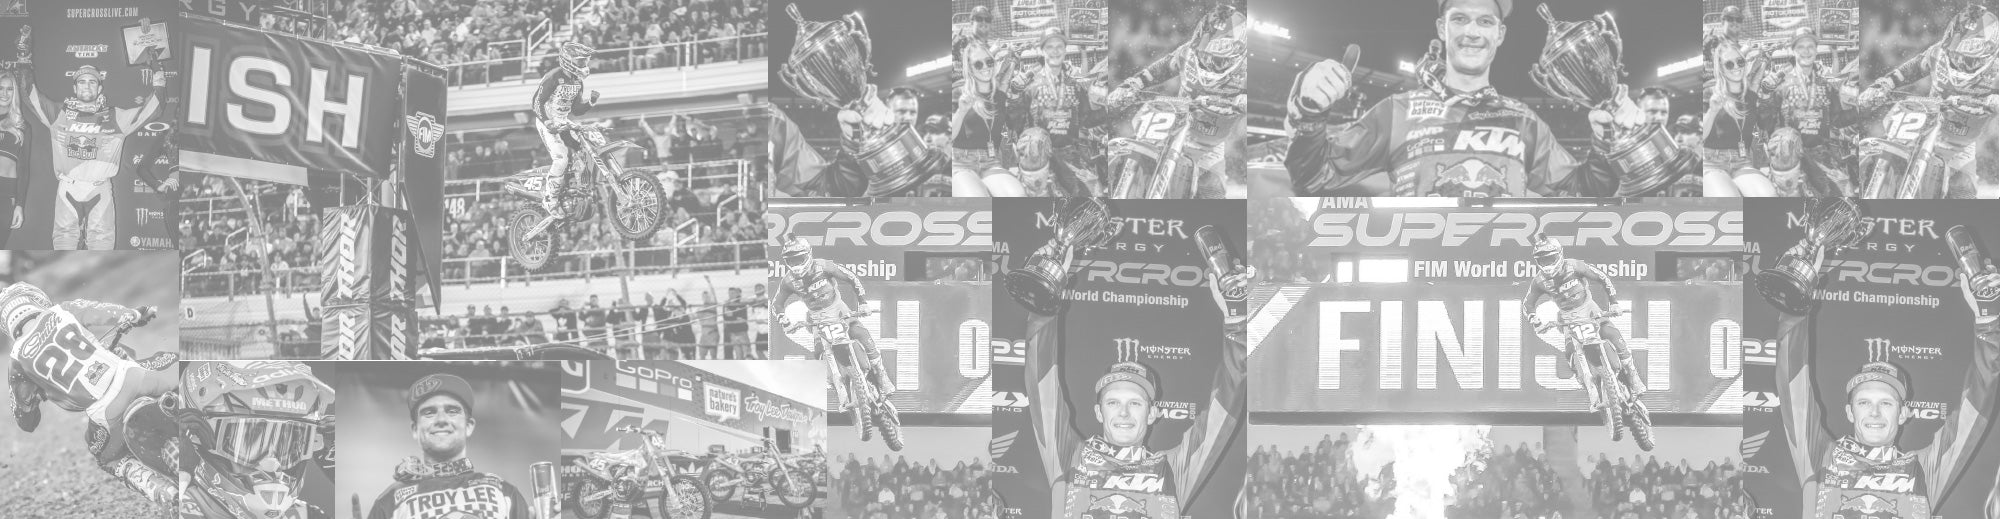 Inside TLD - Team